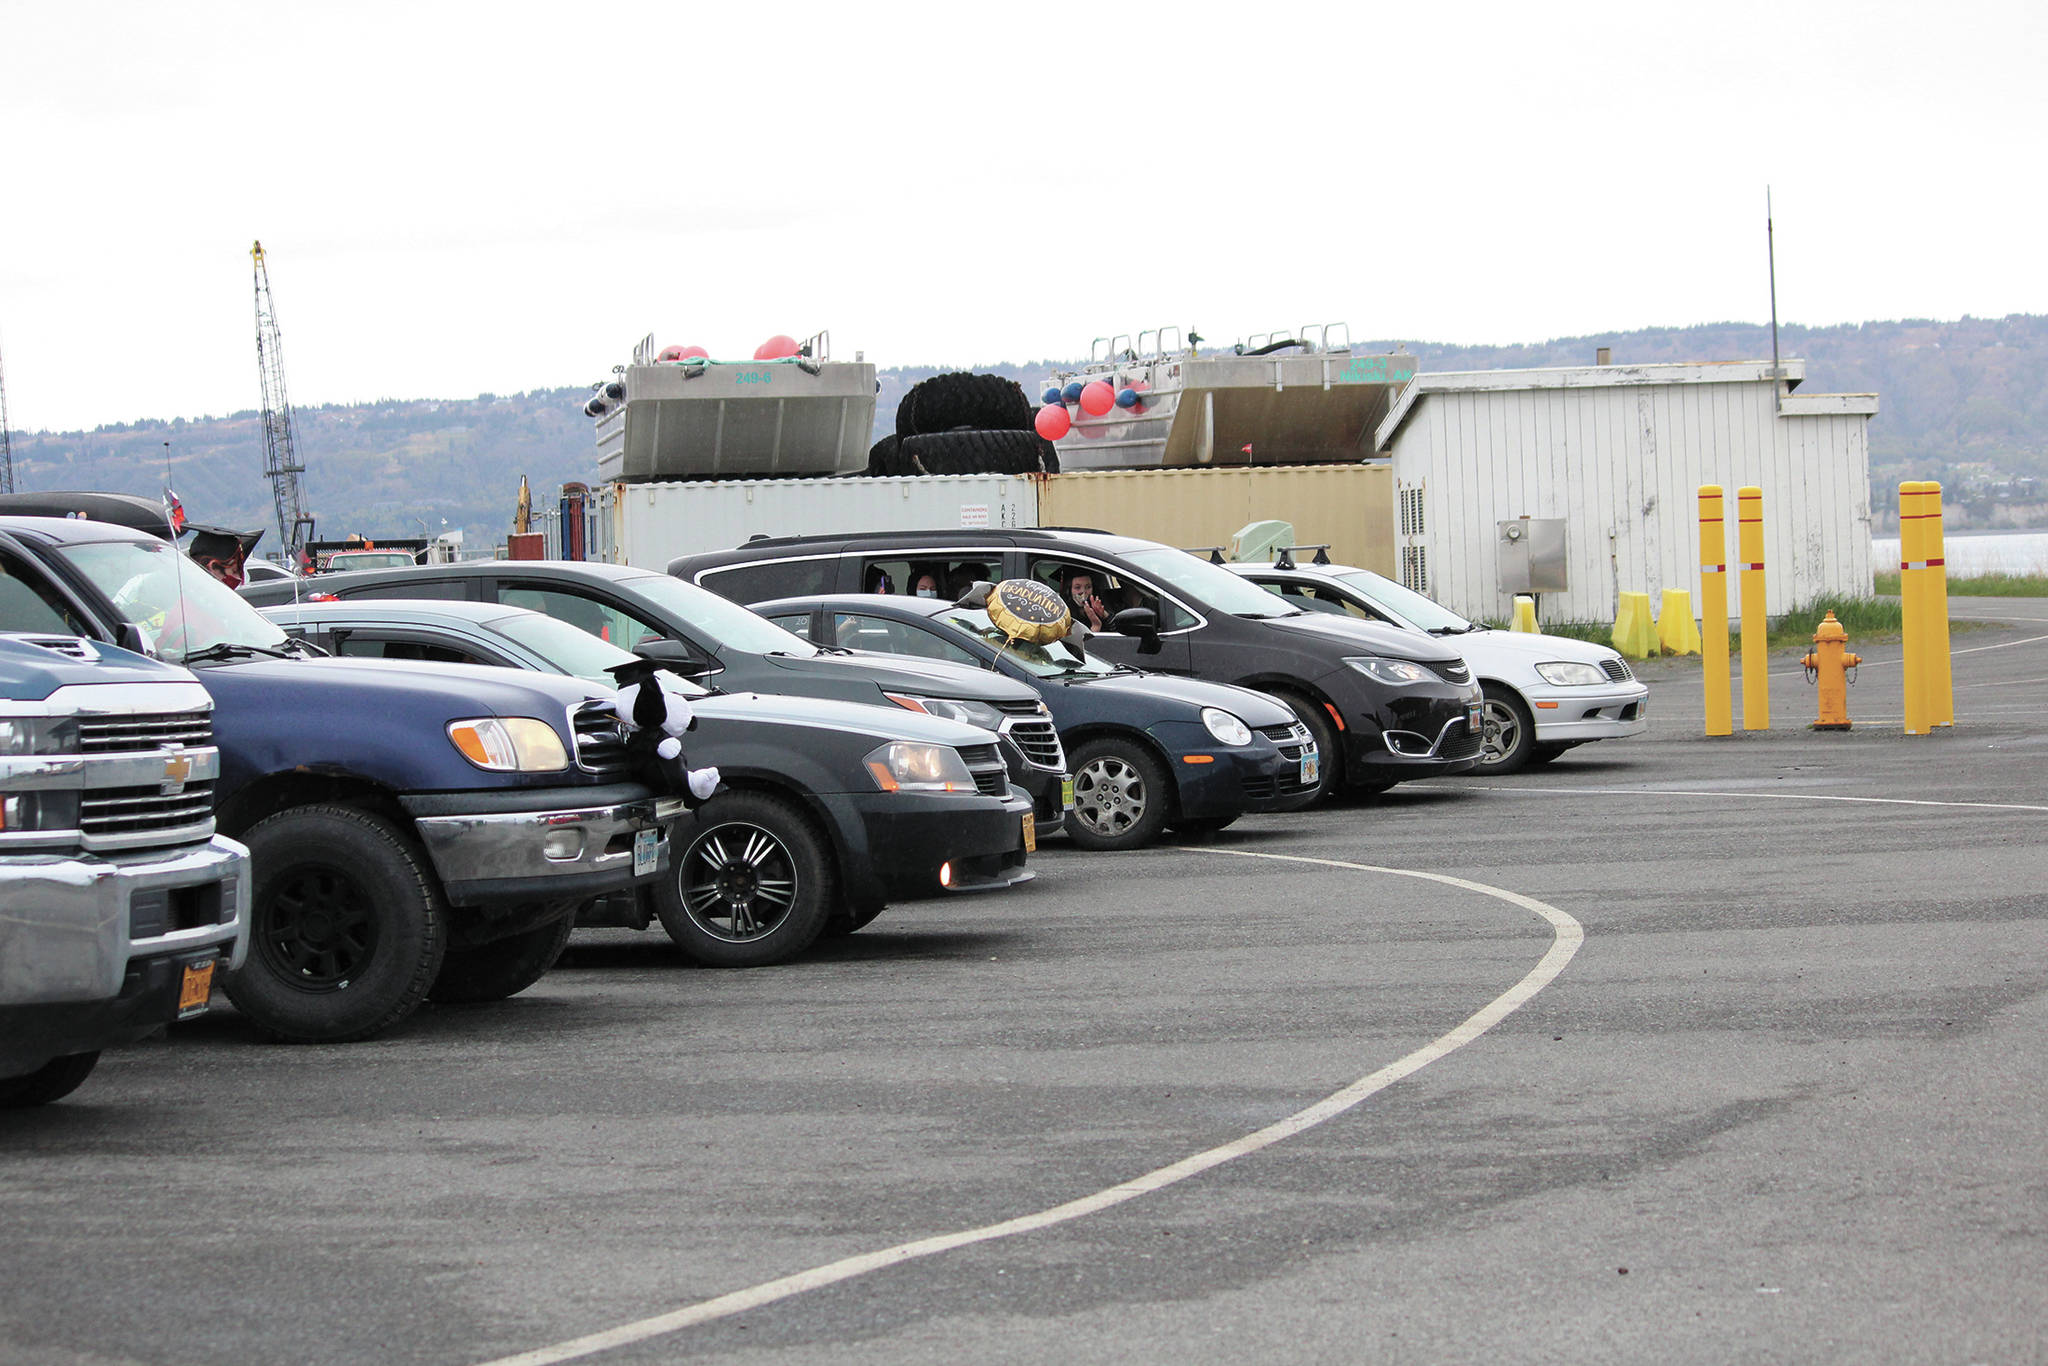 Vehicles wait in line with graduates inside them during a commencement ceremony for Homer Flex School on Monday, May 18, 2020 at the Homer Harbor in Homer, Alaska. Students got out of the vehicles to collect their diplomas and get photos before returning. The program was pre-recorded and played on public radio. (Photo by Megan Pacer/Homer News)